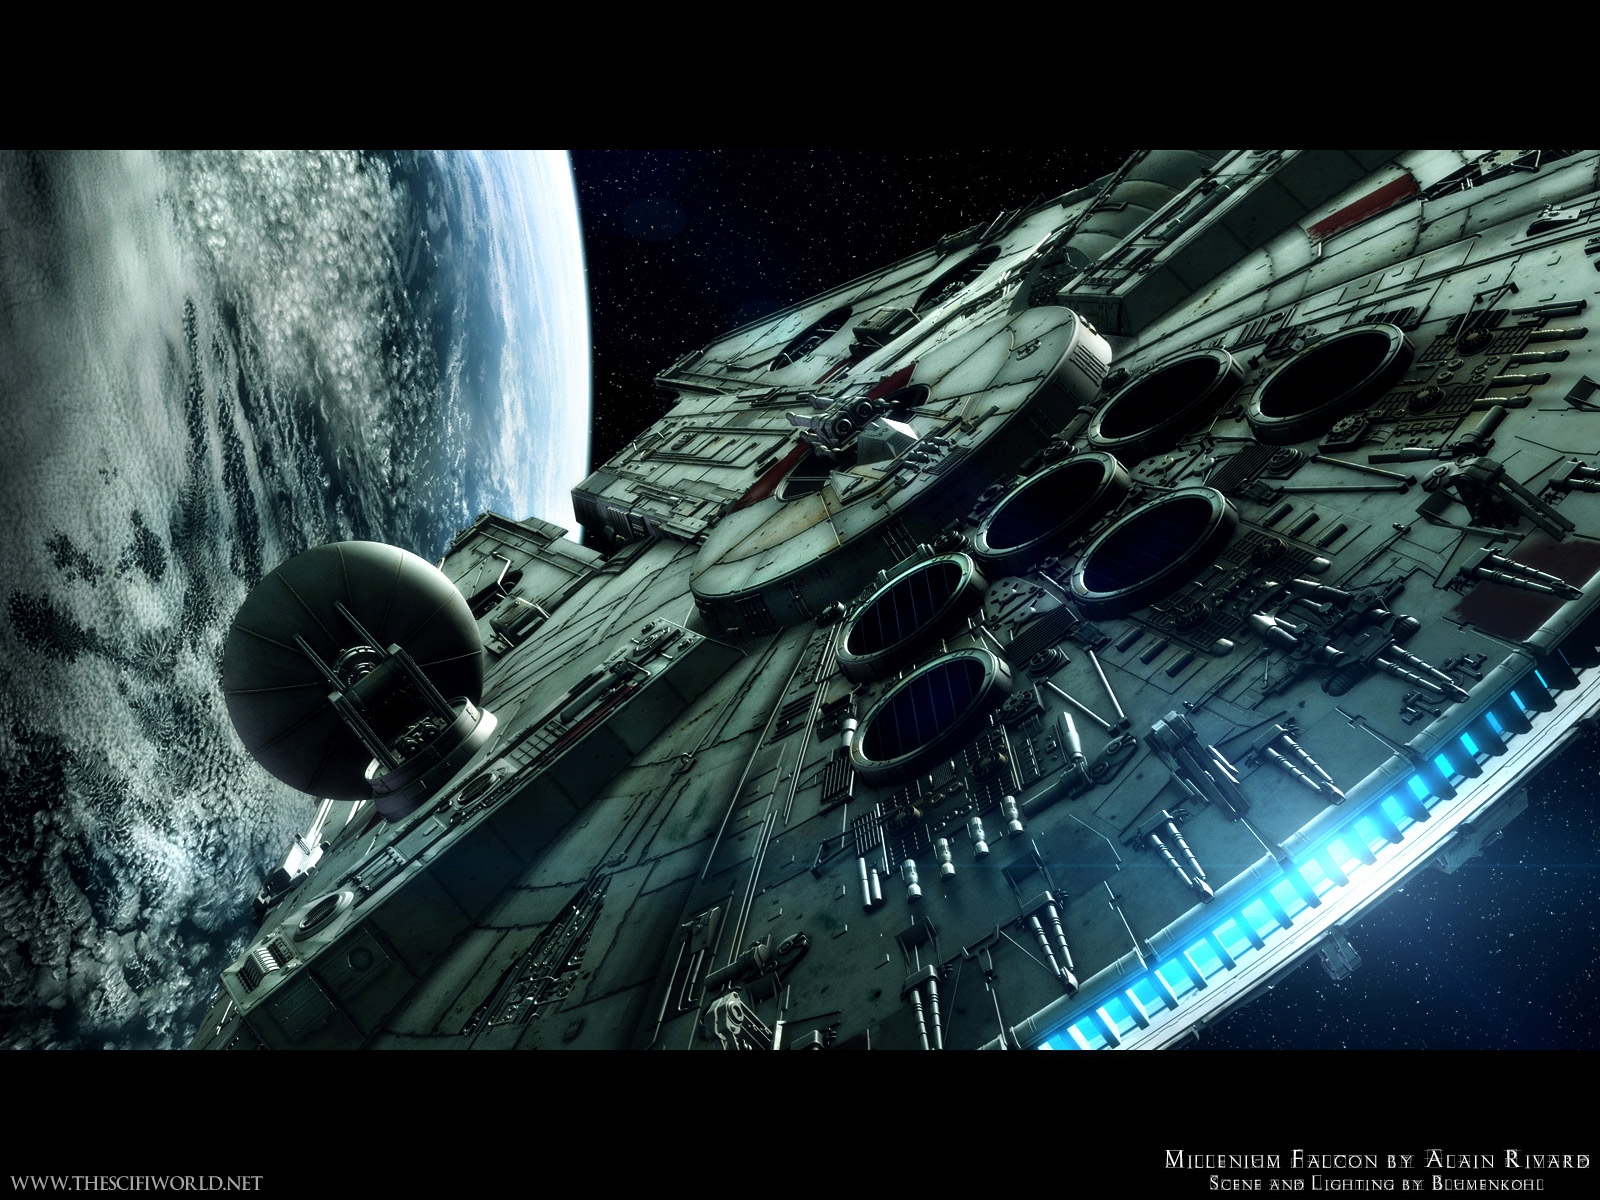 airplane hd wallpapers star war wallpaper star wars hd wallpapers 1600x1200